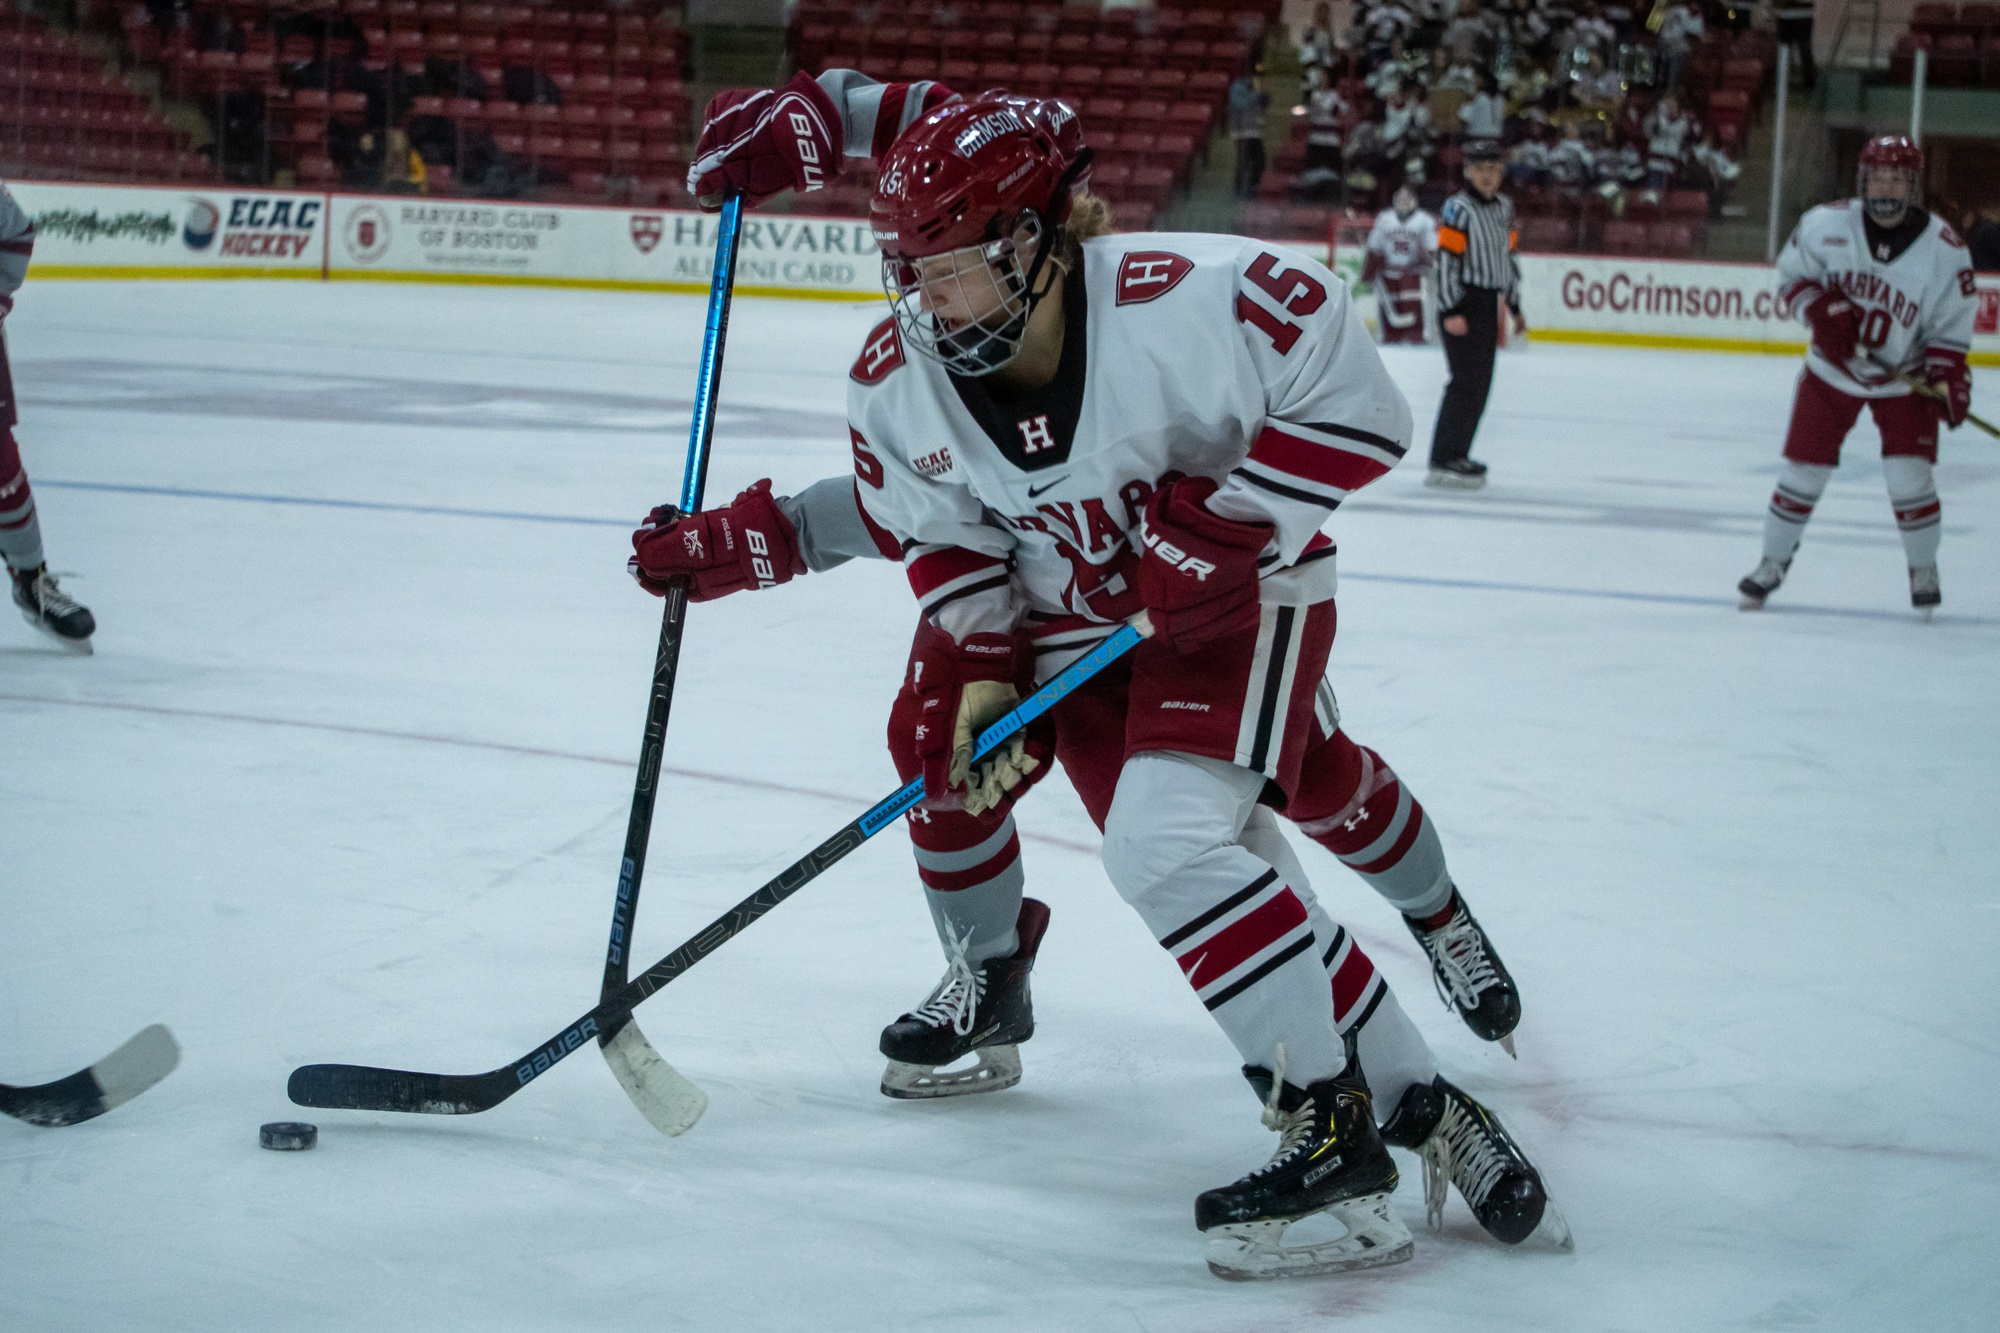 Junior forward Becca Gilmore (above) proved to be a difference maker, leading Harvard with three goals over the two games, including the OT game-winner against Union.